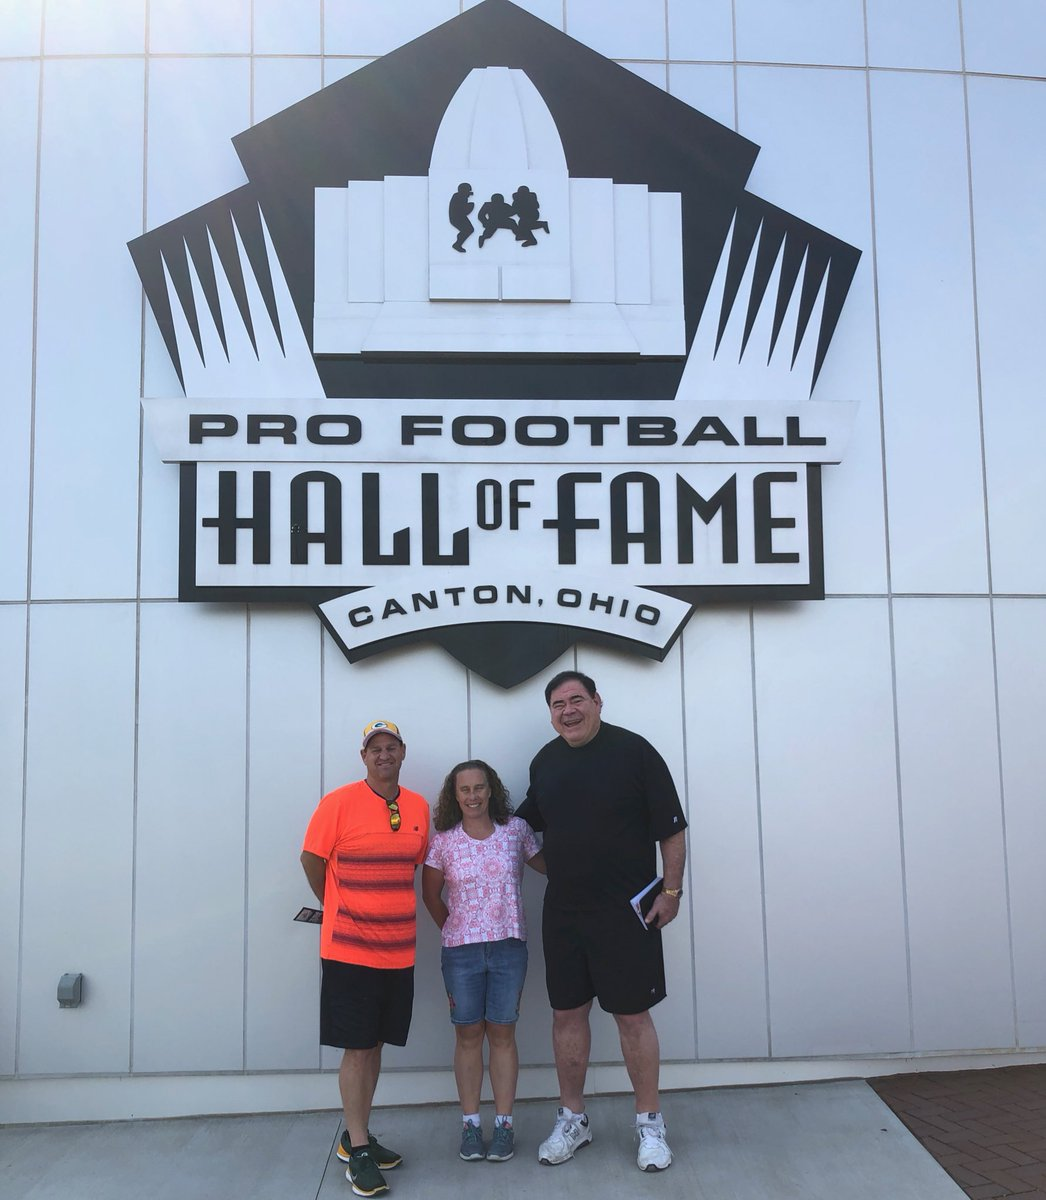 .@packers fans Phil and his wife Jennifer visited the HOF today for their 1st time. They met @PFHOFPrez while in Canton. Phil recently attended the Week 2 games for the Packers and Bears to see the HOF Ring Ceremonies for #PFHOF18 members @JerryKramer64GB & .@BUrlacher54